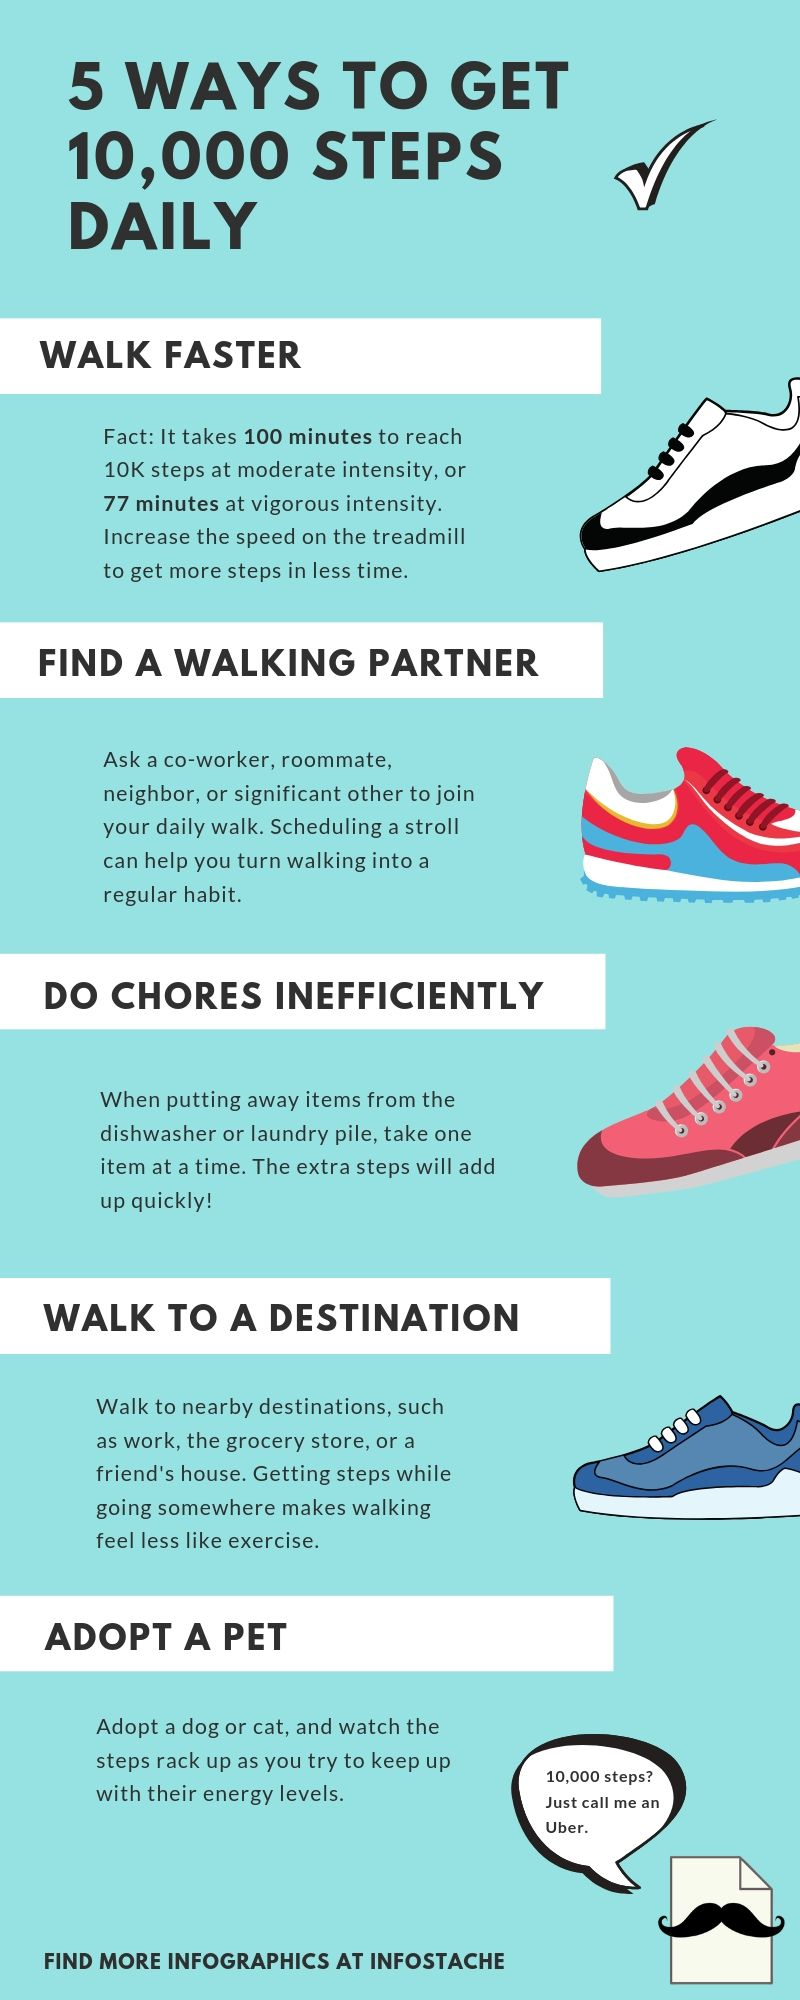 Steps to walk daily